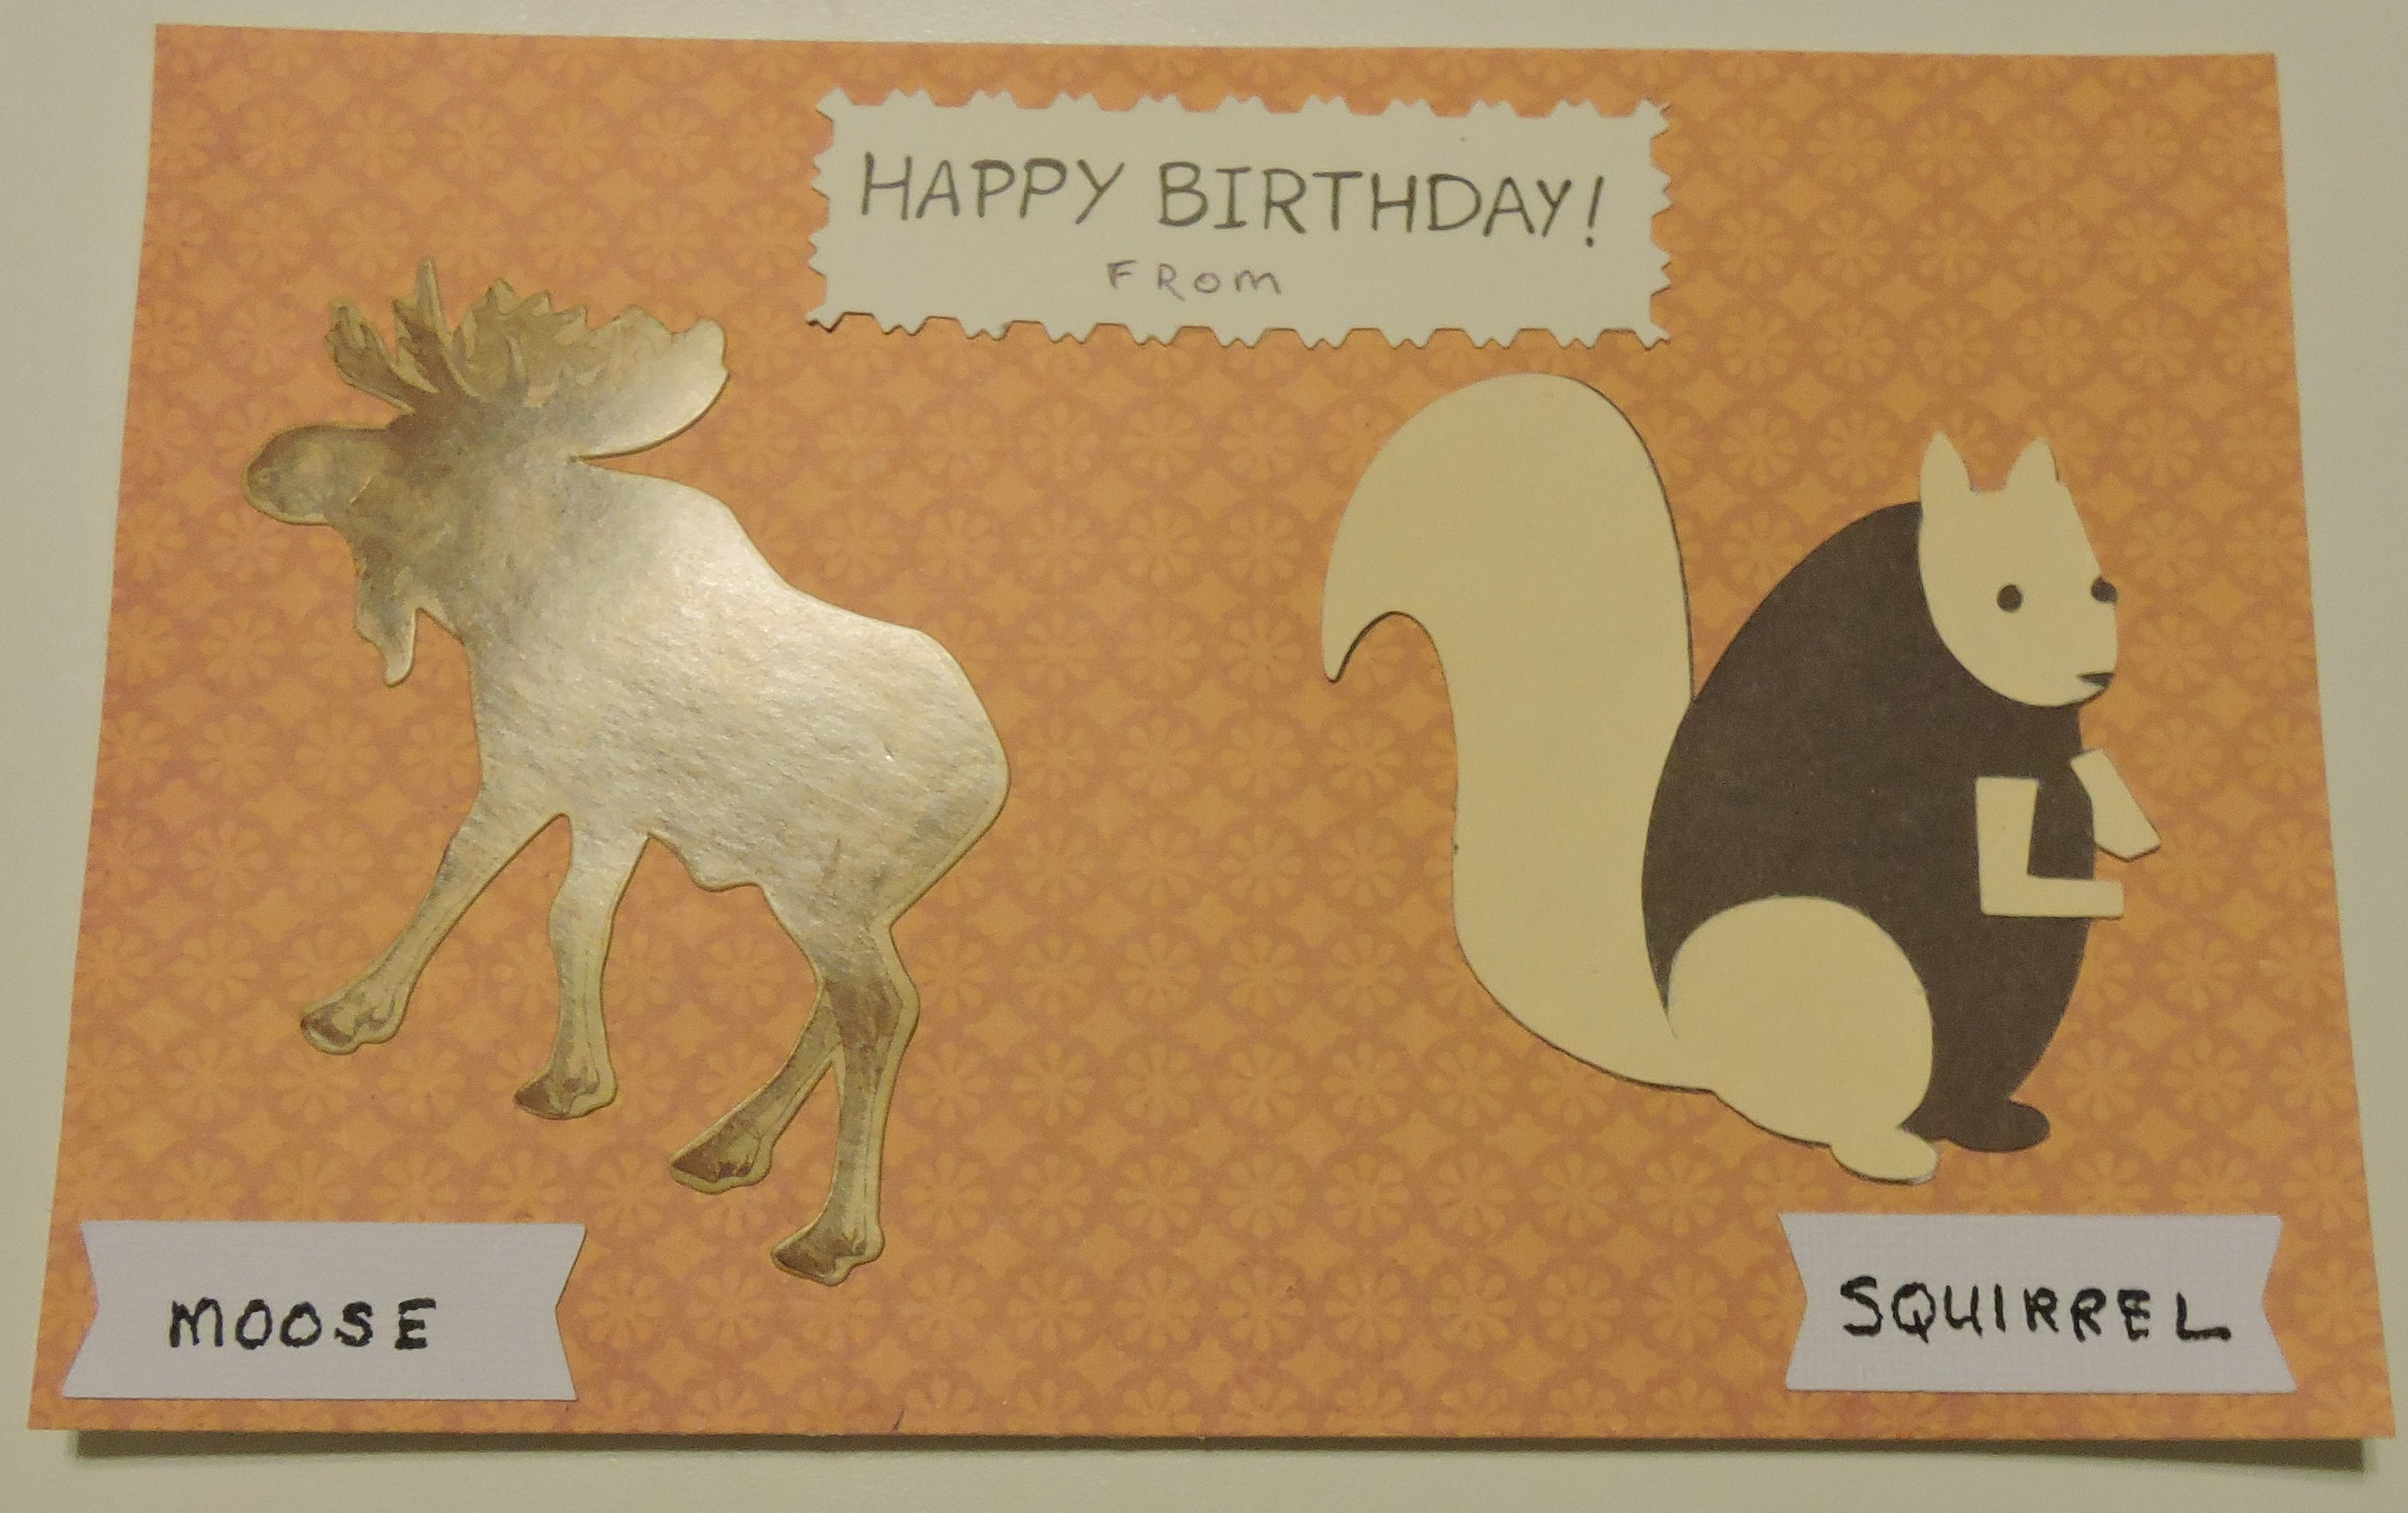 Funny Punnish Birthday Card Squirrel Silhouette Cameo Cutout Moose Embellishment Cards Squirrel Silhouette Birthday Cards